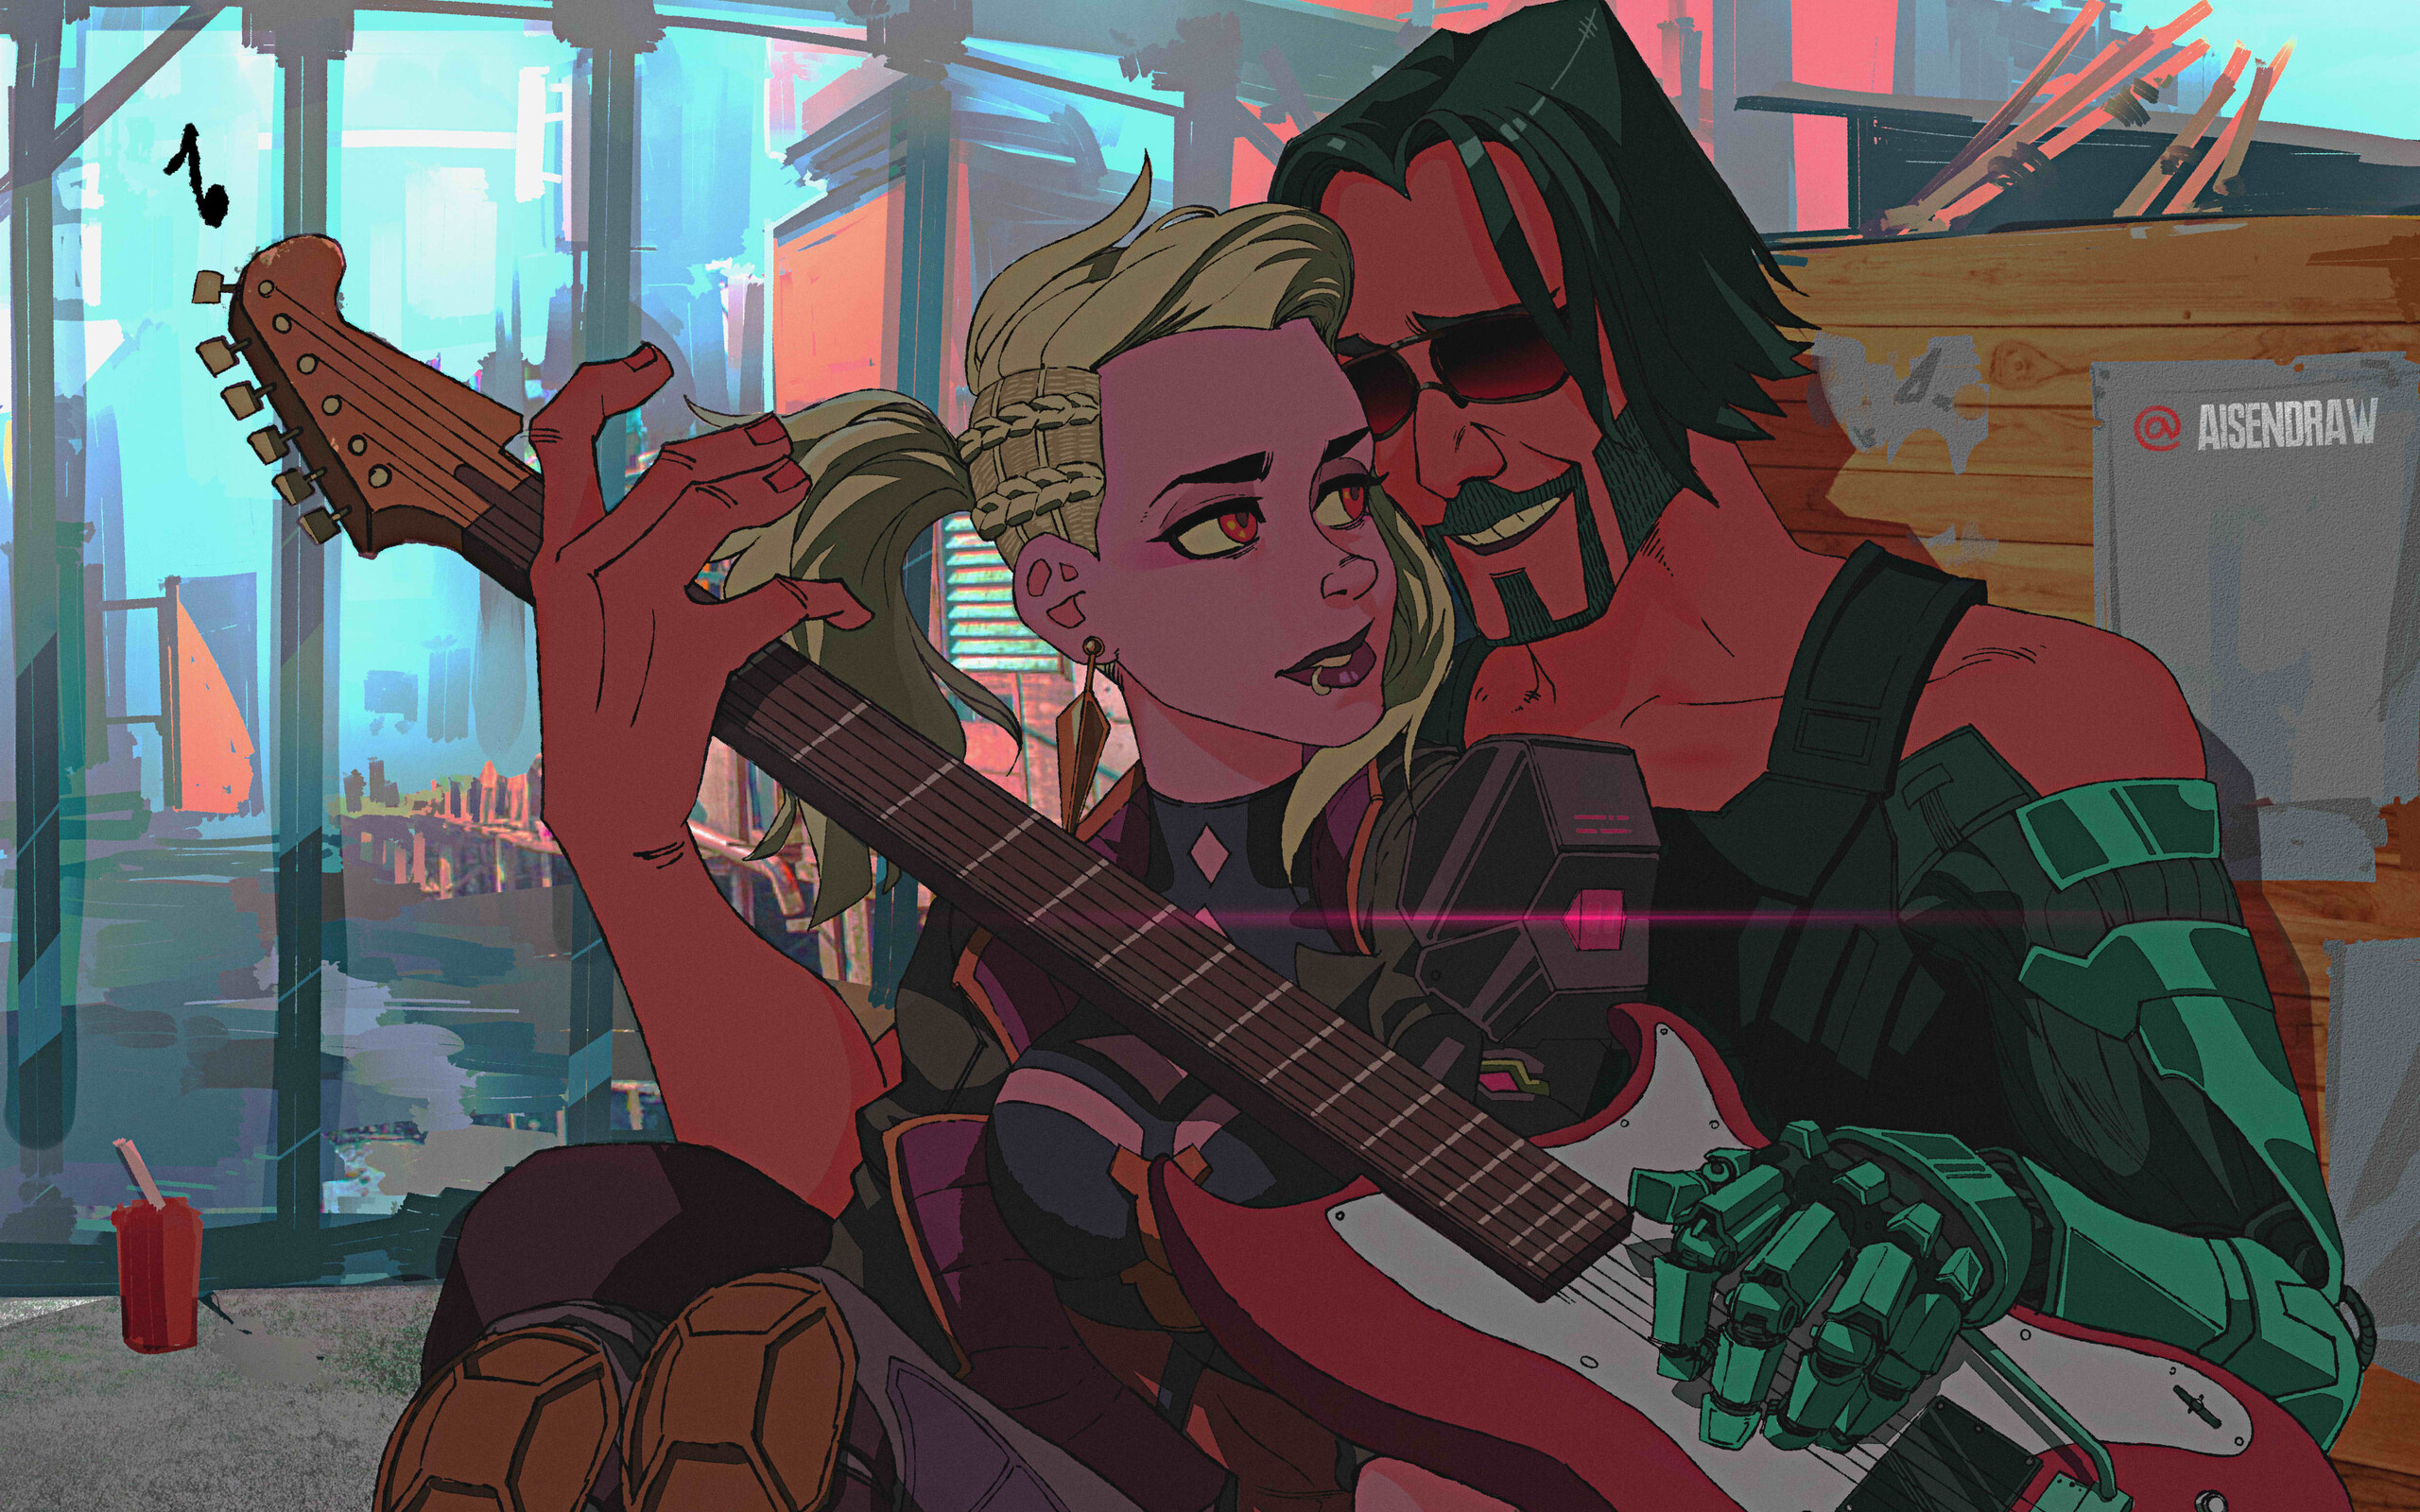 johnny-silverhand-in-love-playing-guitar-cyberpunk-2077-hc.jpg